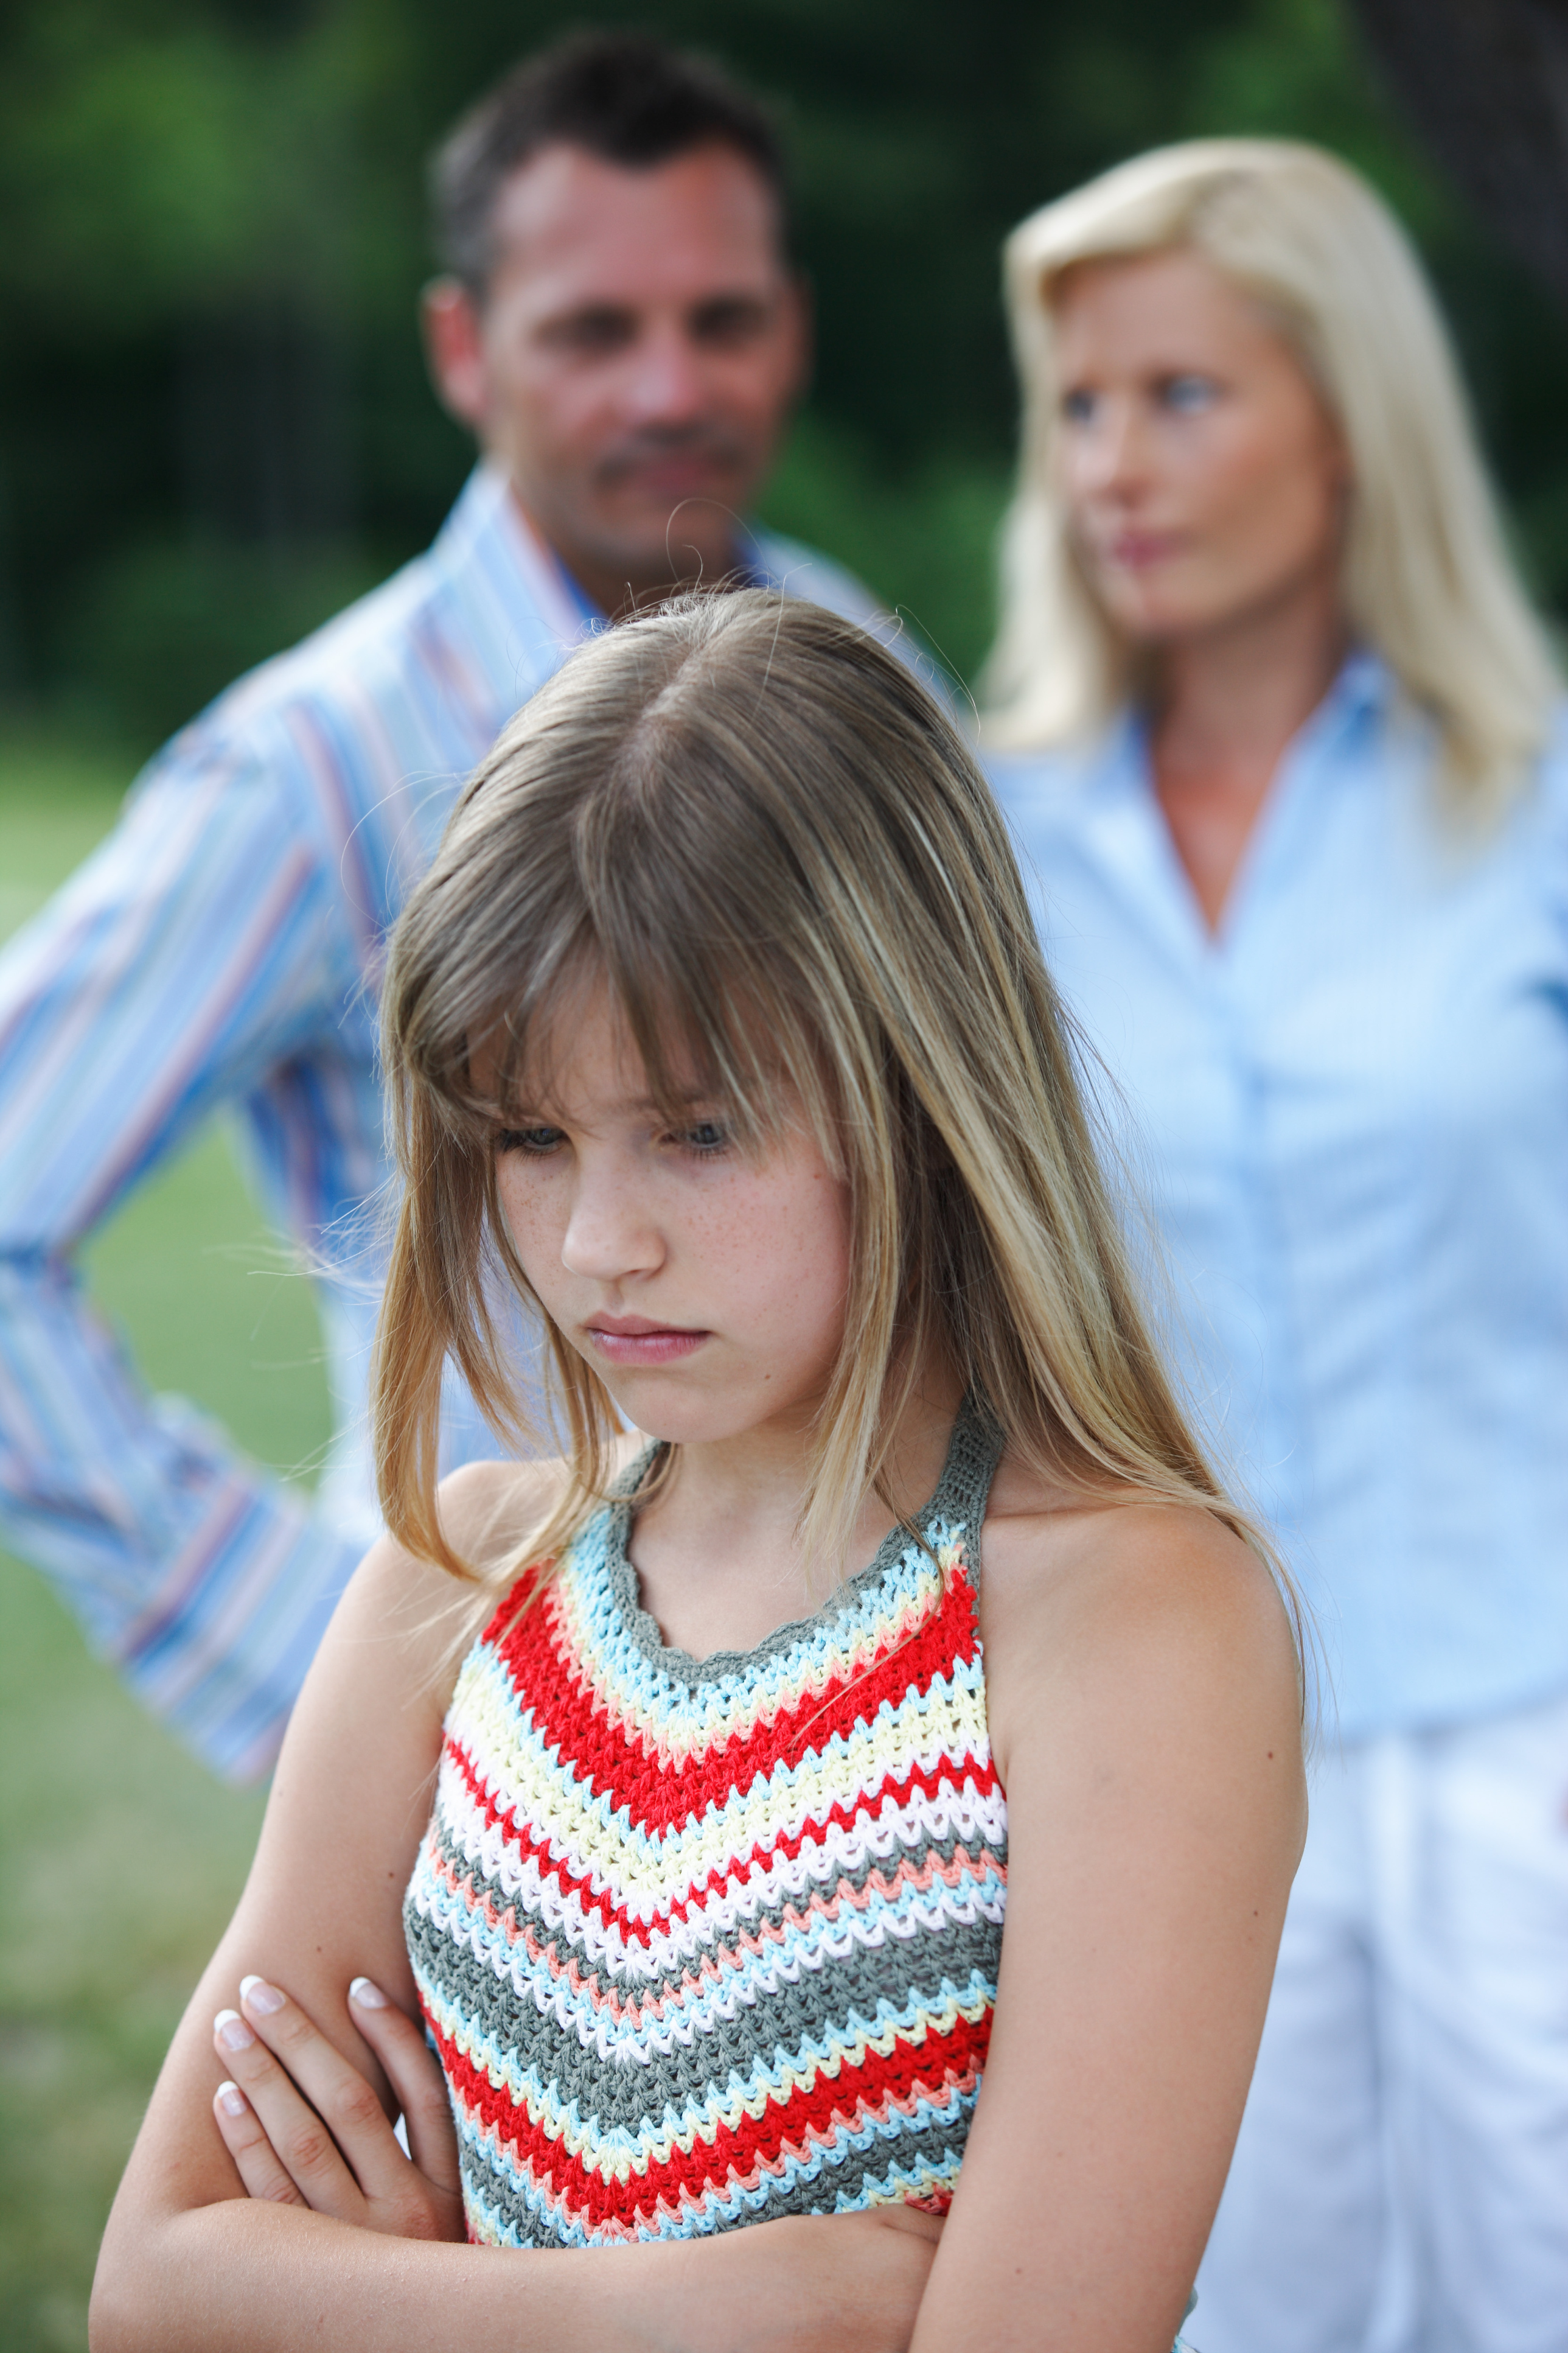 disobedient children 25 bible verses about disobedient children november 21, 2015 bible verses  lack of regard for authority or rulershipthe child who exhibits a rebellious.